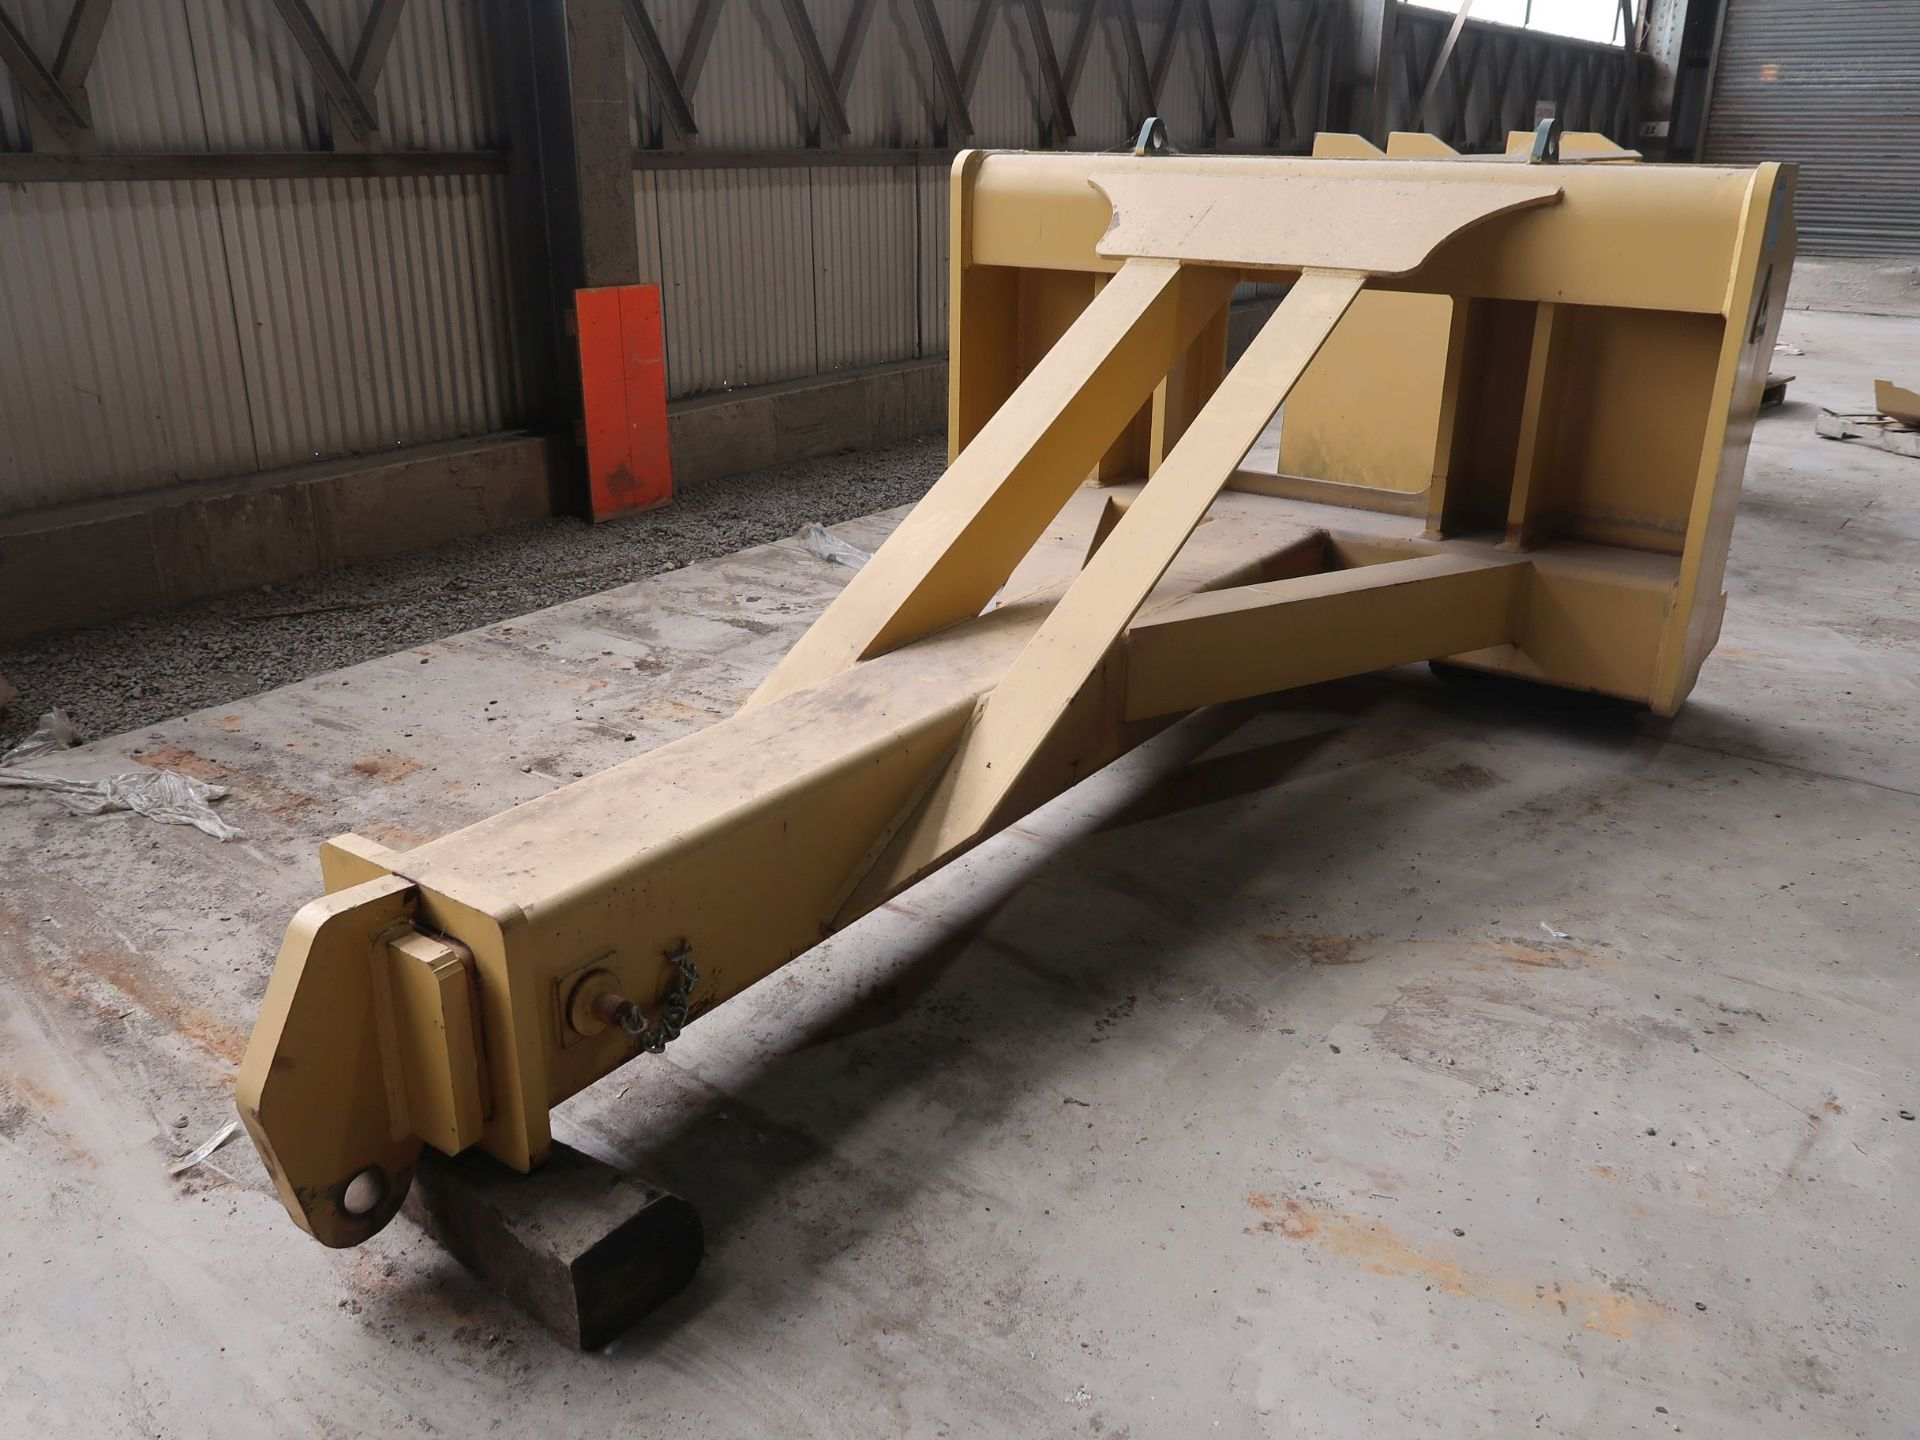 Lot 1040 - DYMAX MODEL 5244D1 BOOM ATTACHMENT (LIKE NEW); S/N 152454, 8' LONG MAIN ARM WITH TELESCOPING END